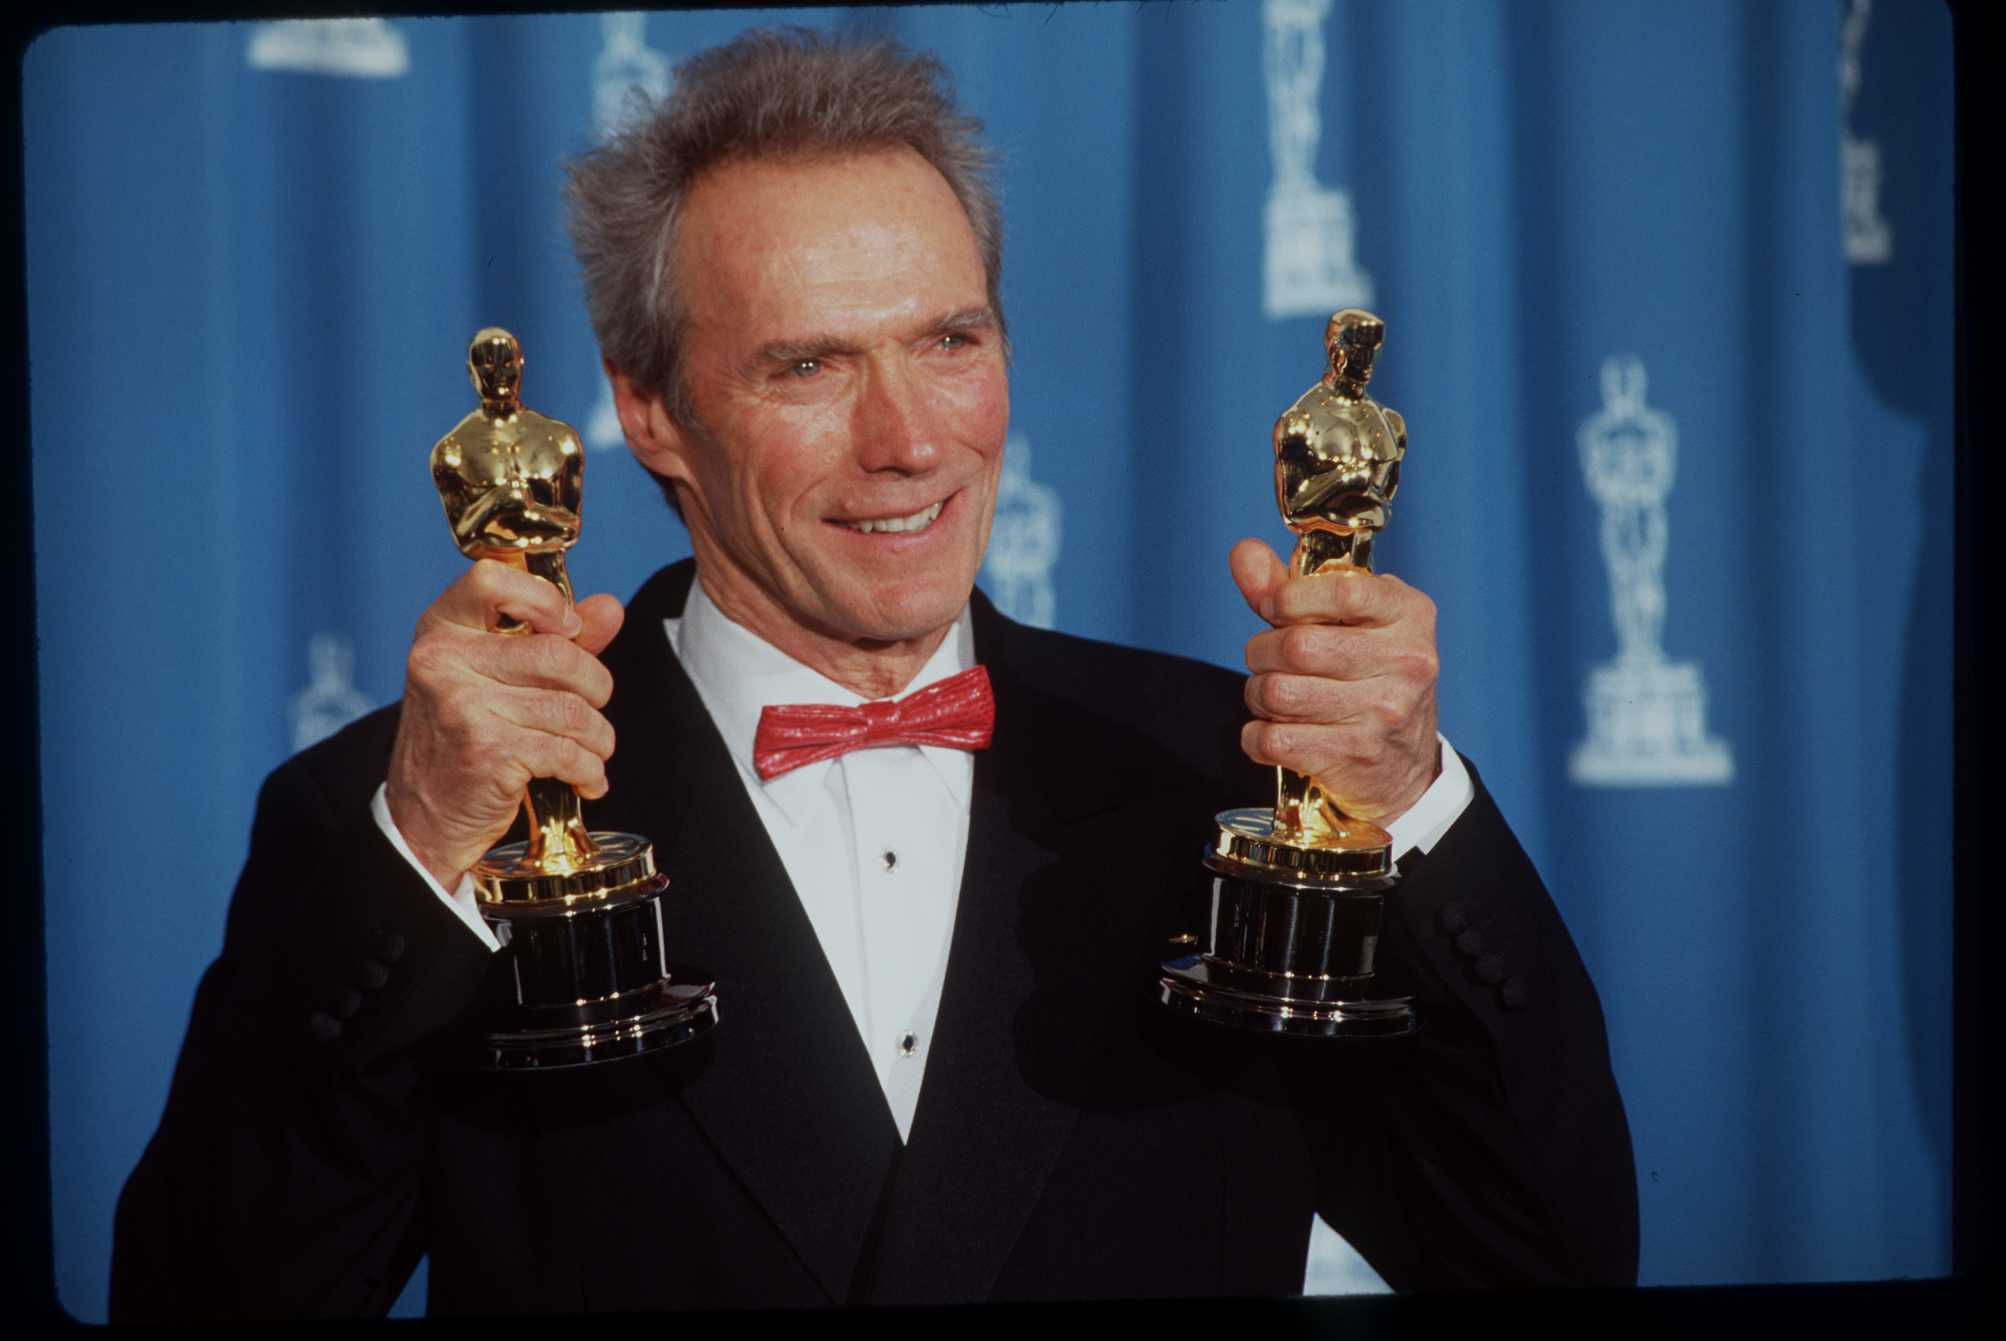 Biography of Clint Eastwood: Actor and Director